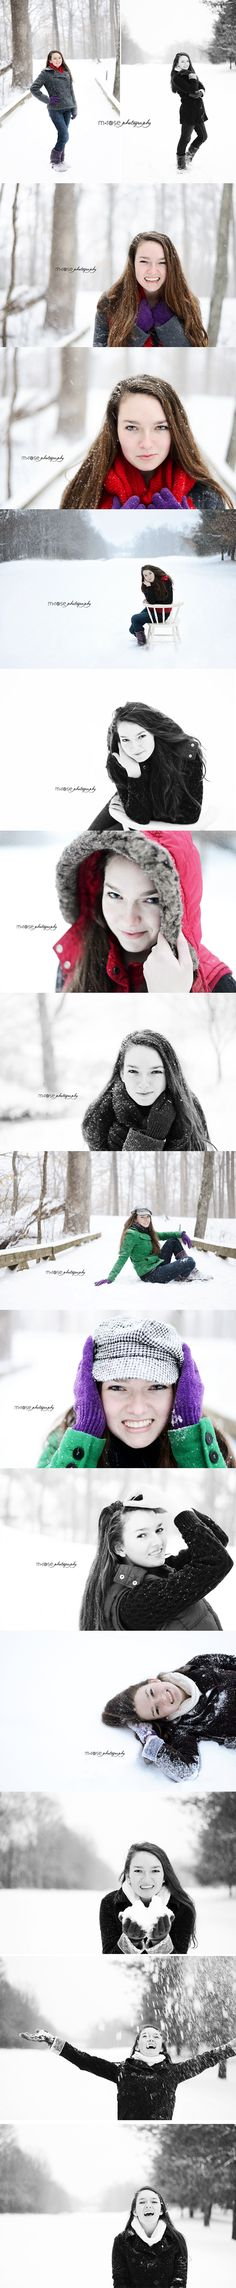 Winter senior portraits. Senior girl pictures in the snow. Outdoor winter senior girl session | M Rose Photography